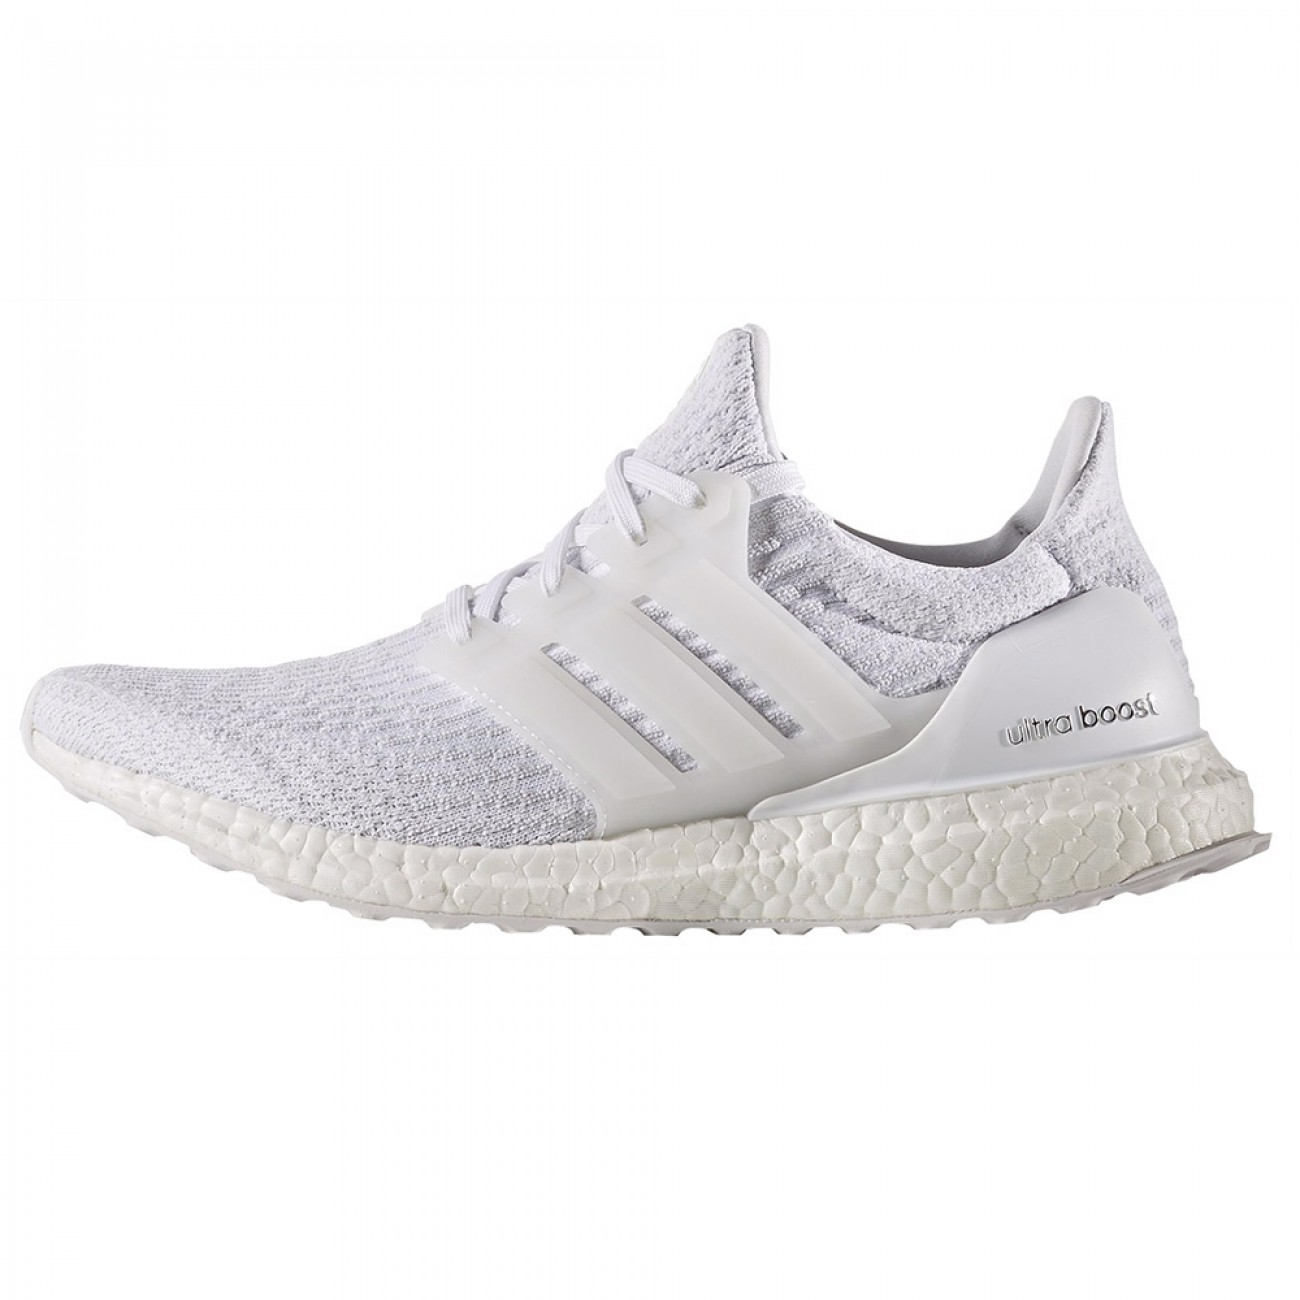 adidas ultraboost 3 0 white men 39 s shoes triple white 2017. Black Bedroom Furniture Sets. Home Design Ideas